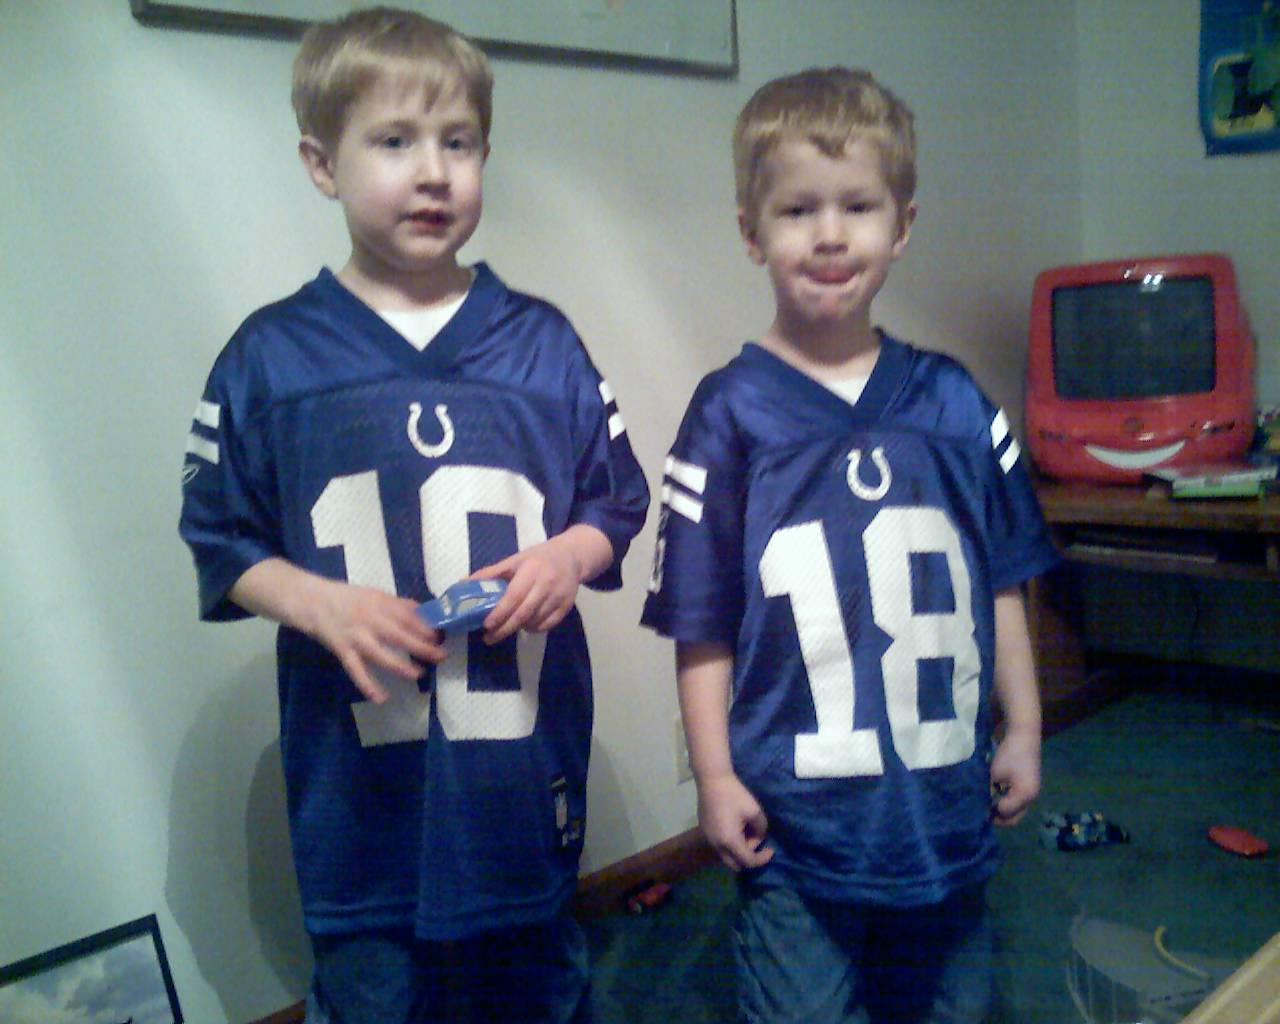 Two big little Colts fans